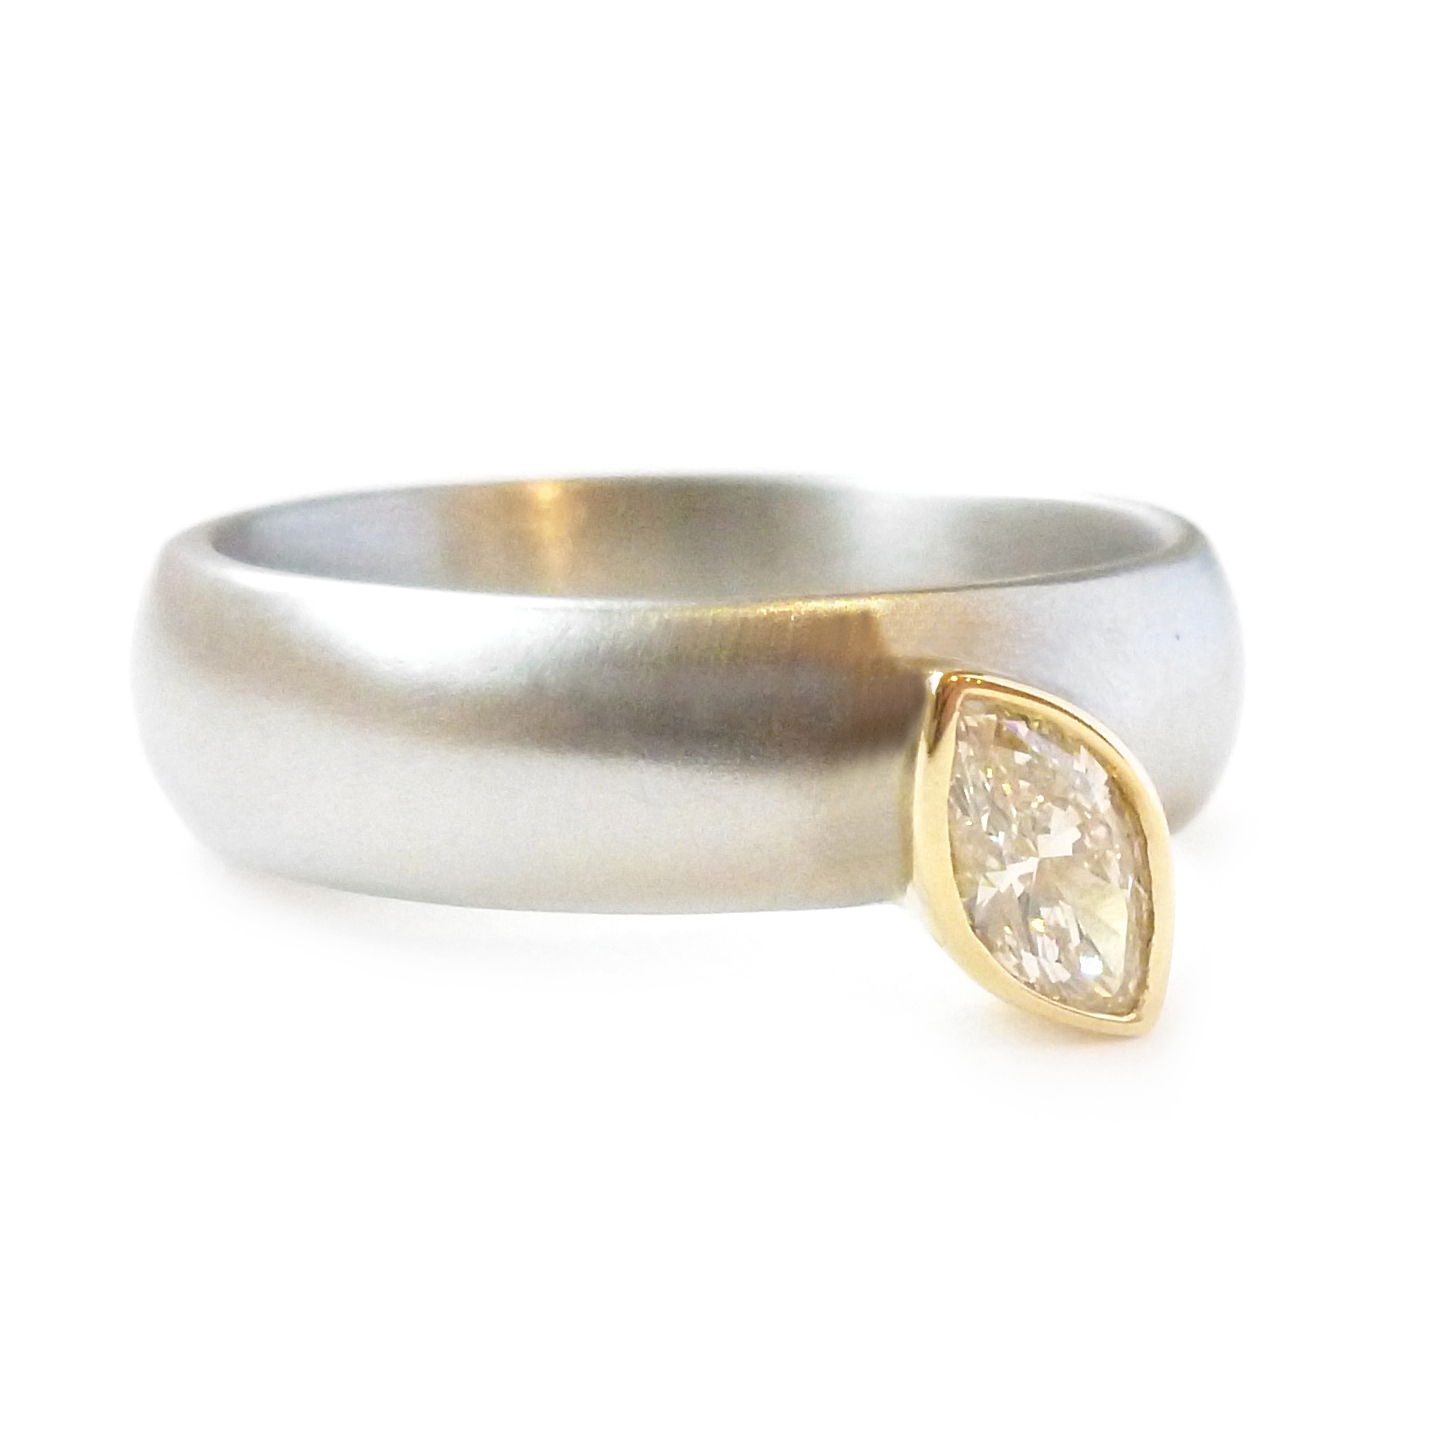 2c7cfc15a Palladium, gold and marquise diamond ring   Contemporary Rings by ...